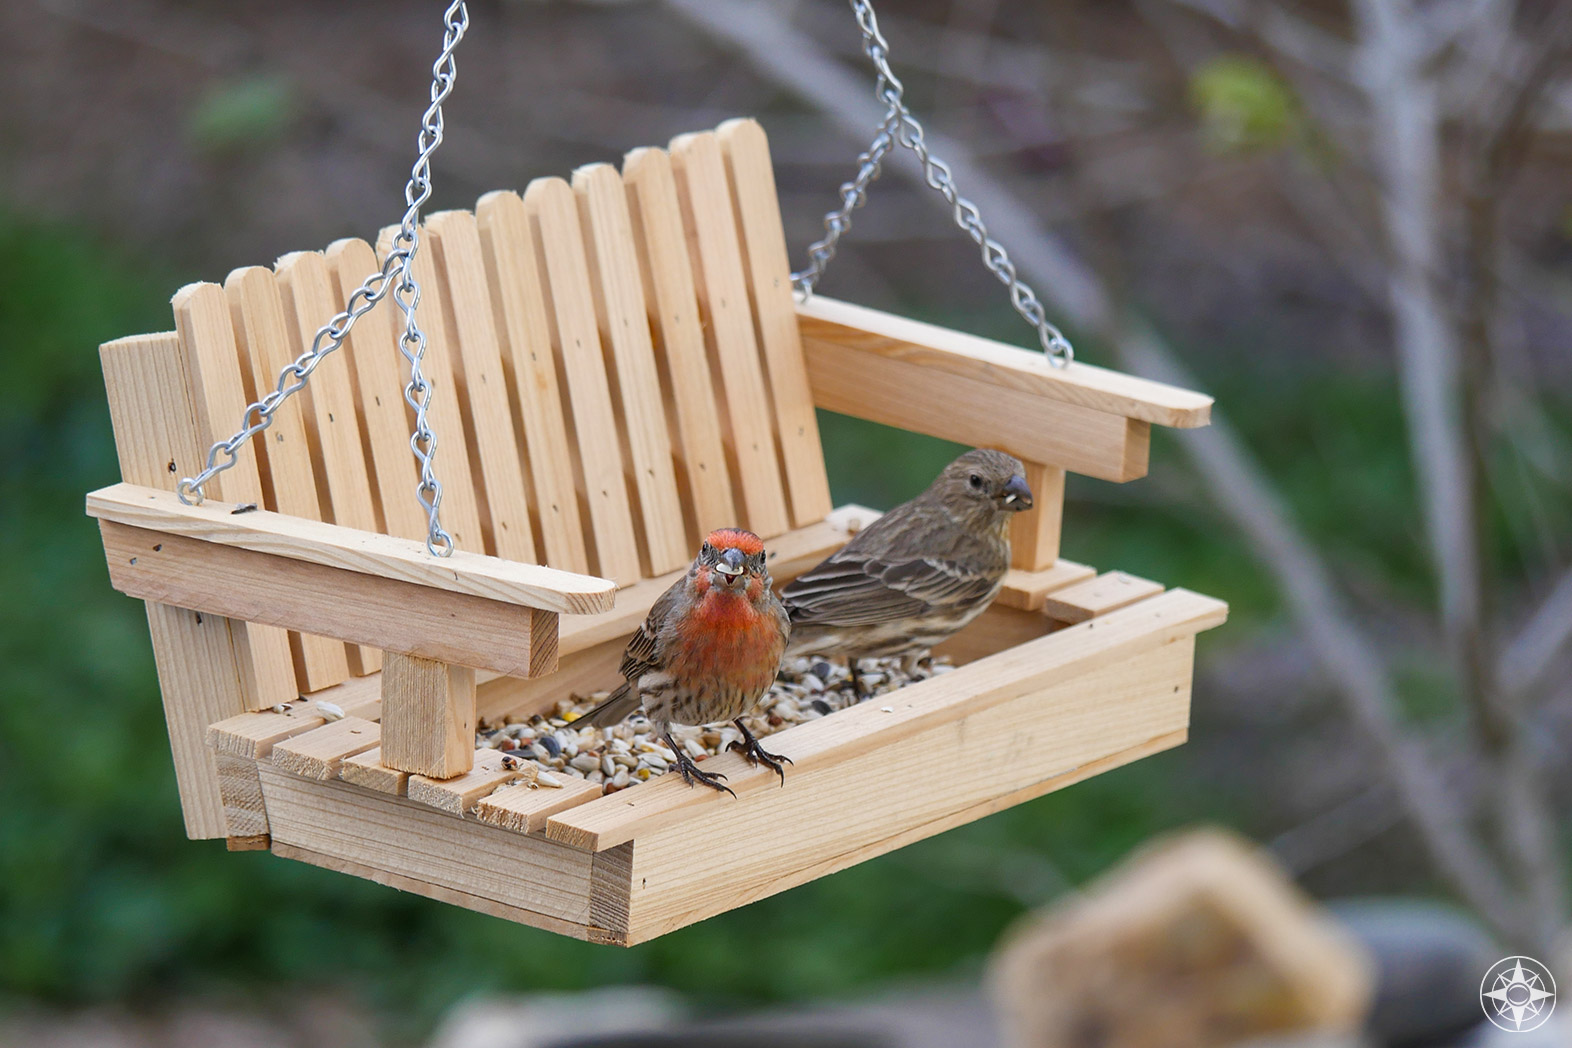 House finches on wooden swing bird feeder, brown bird with red chest and orange chest, great backyard bird count